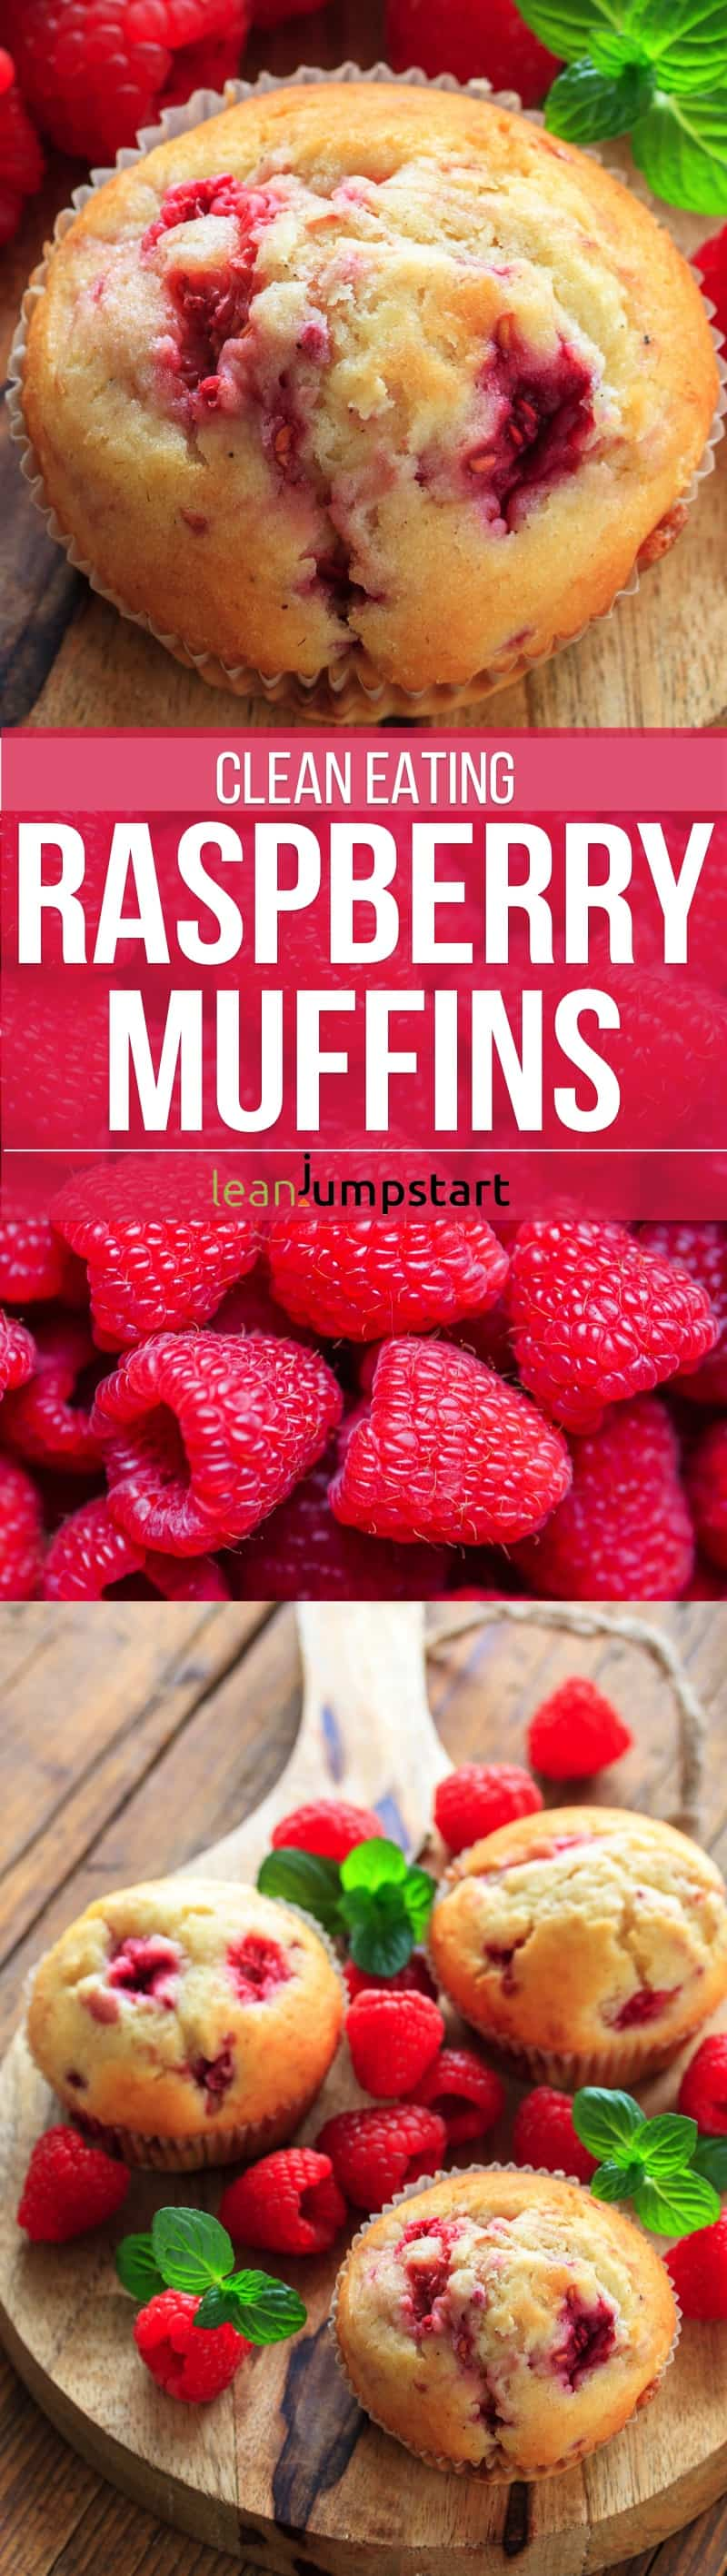 These clean eating raspberry muffins are a perfect option for a healthy bit of deliciousness. They are sugar-free, low-fat and easy to bake. They make also a great party food! Repin this and then click through to read about this clean eating muffin treat!